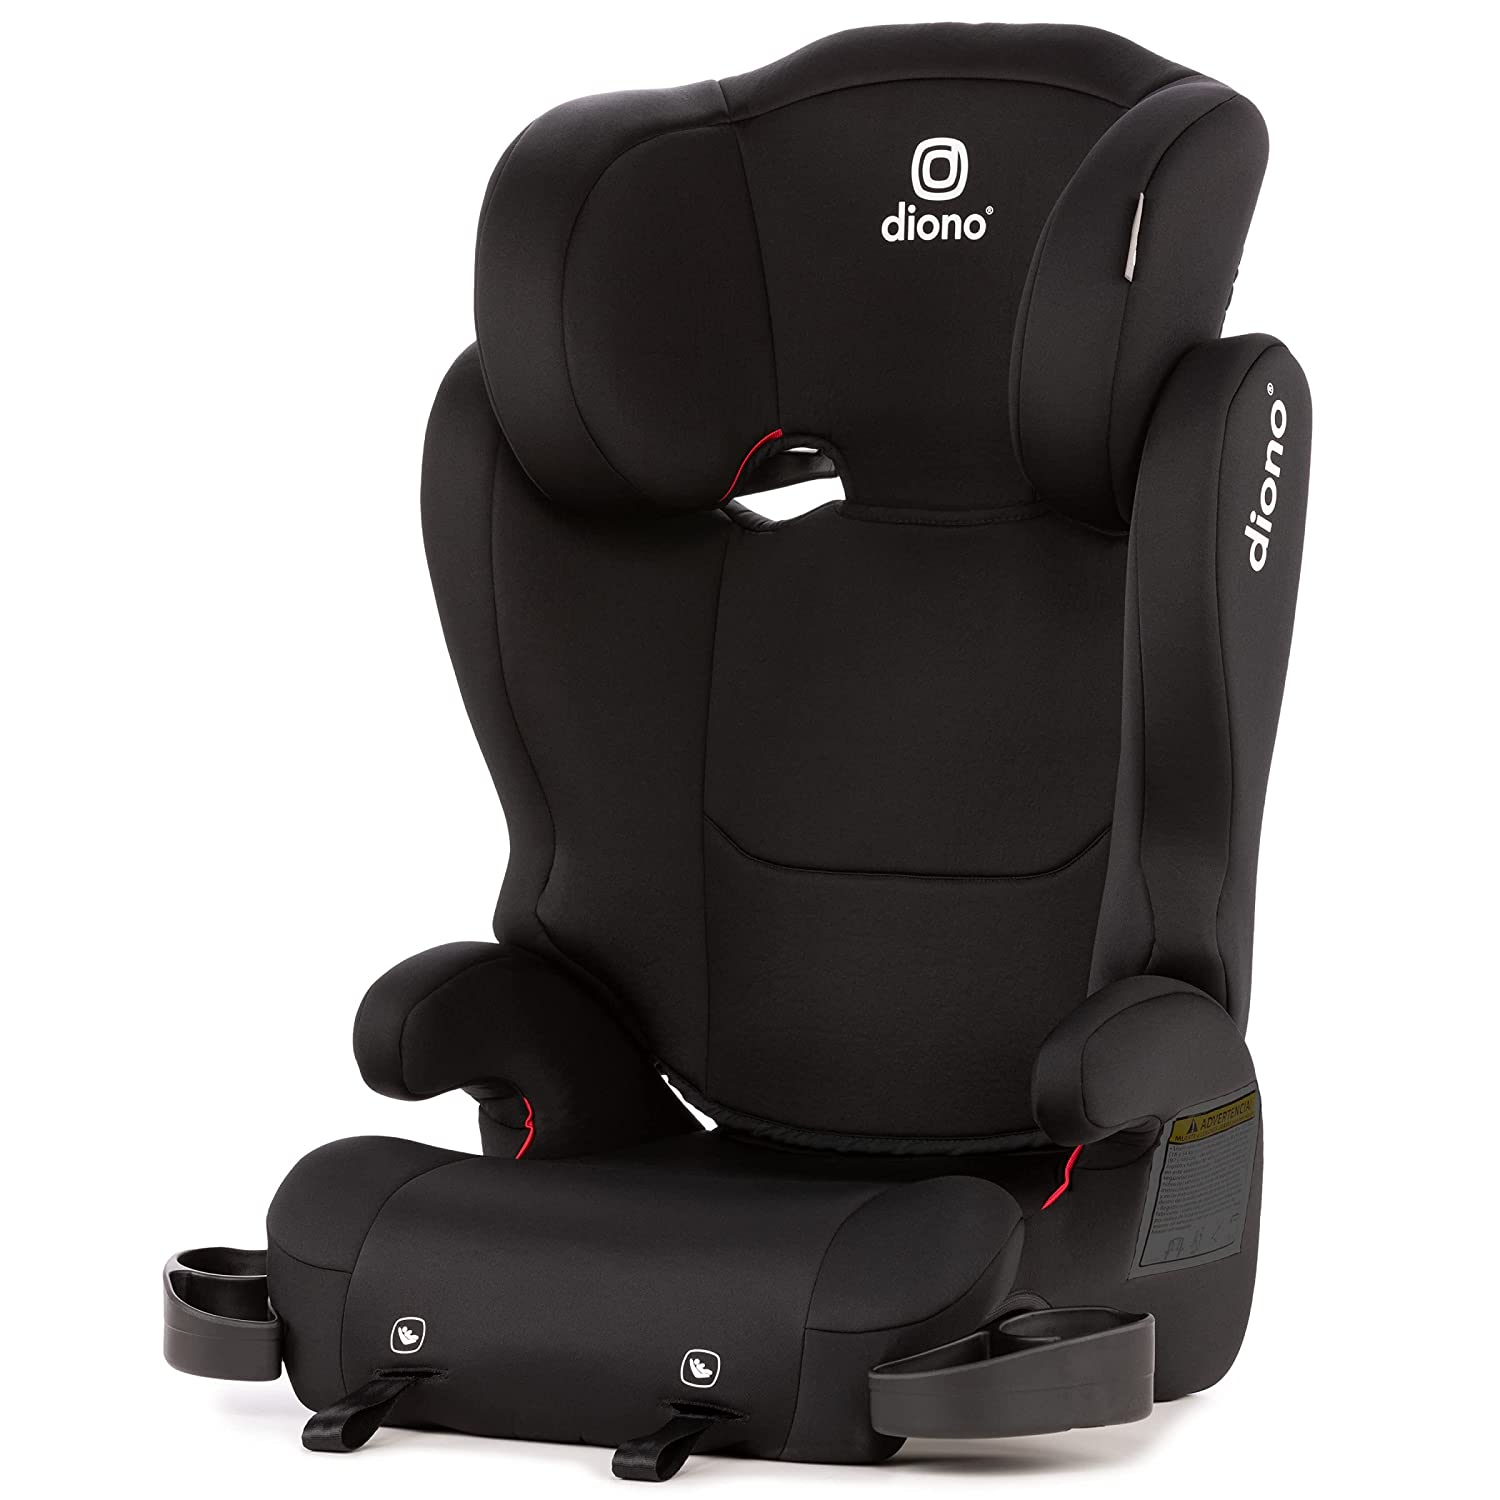 Diono Cambria Belt Positioning Booster Seat